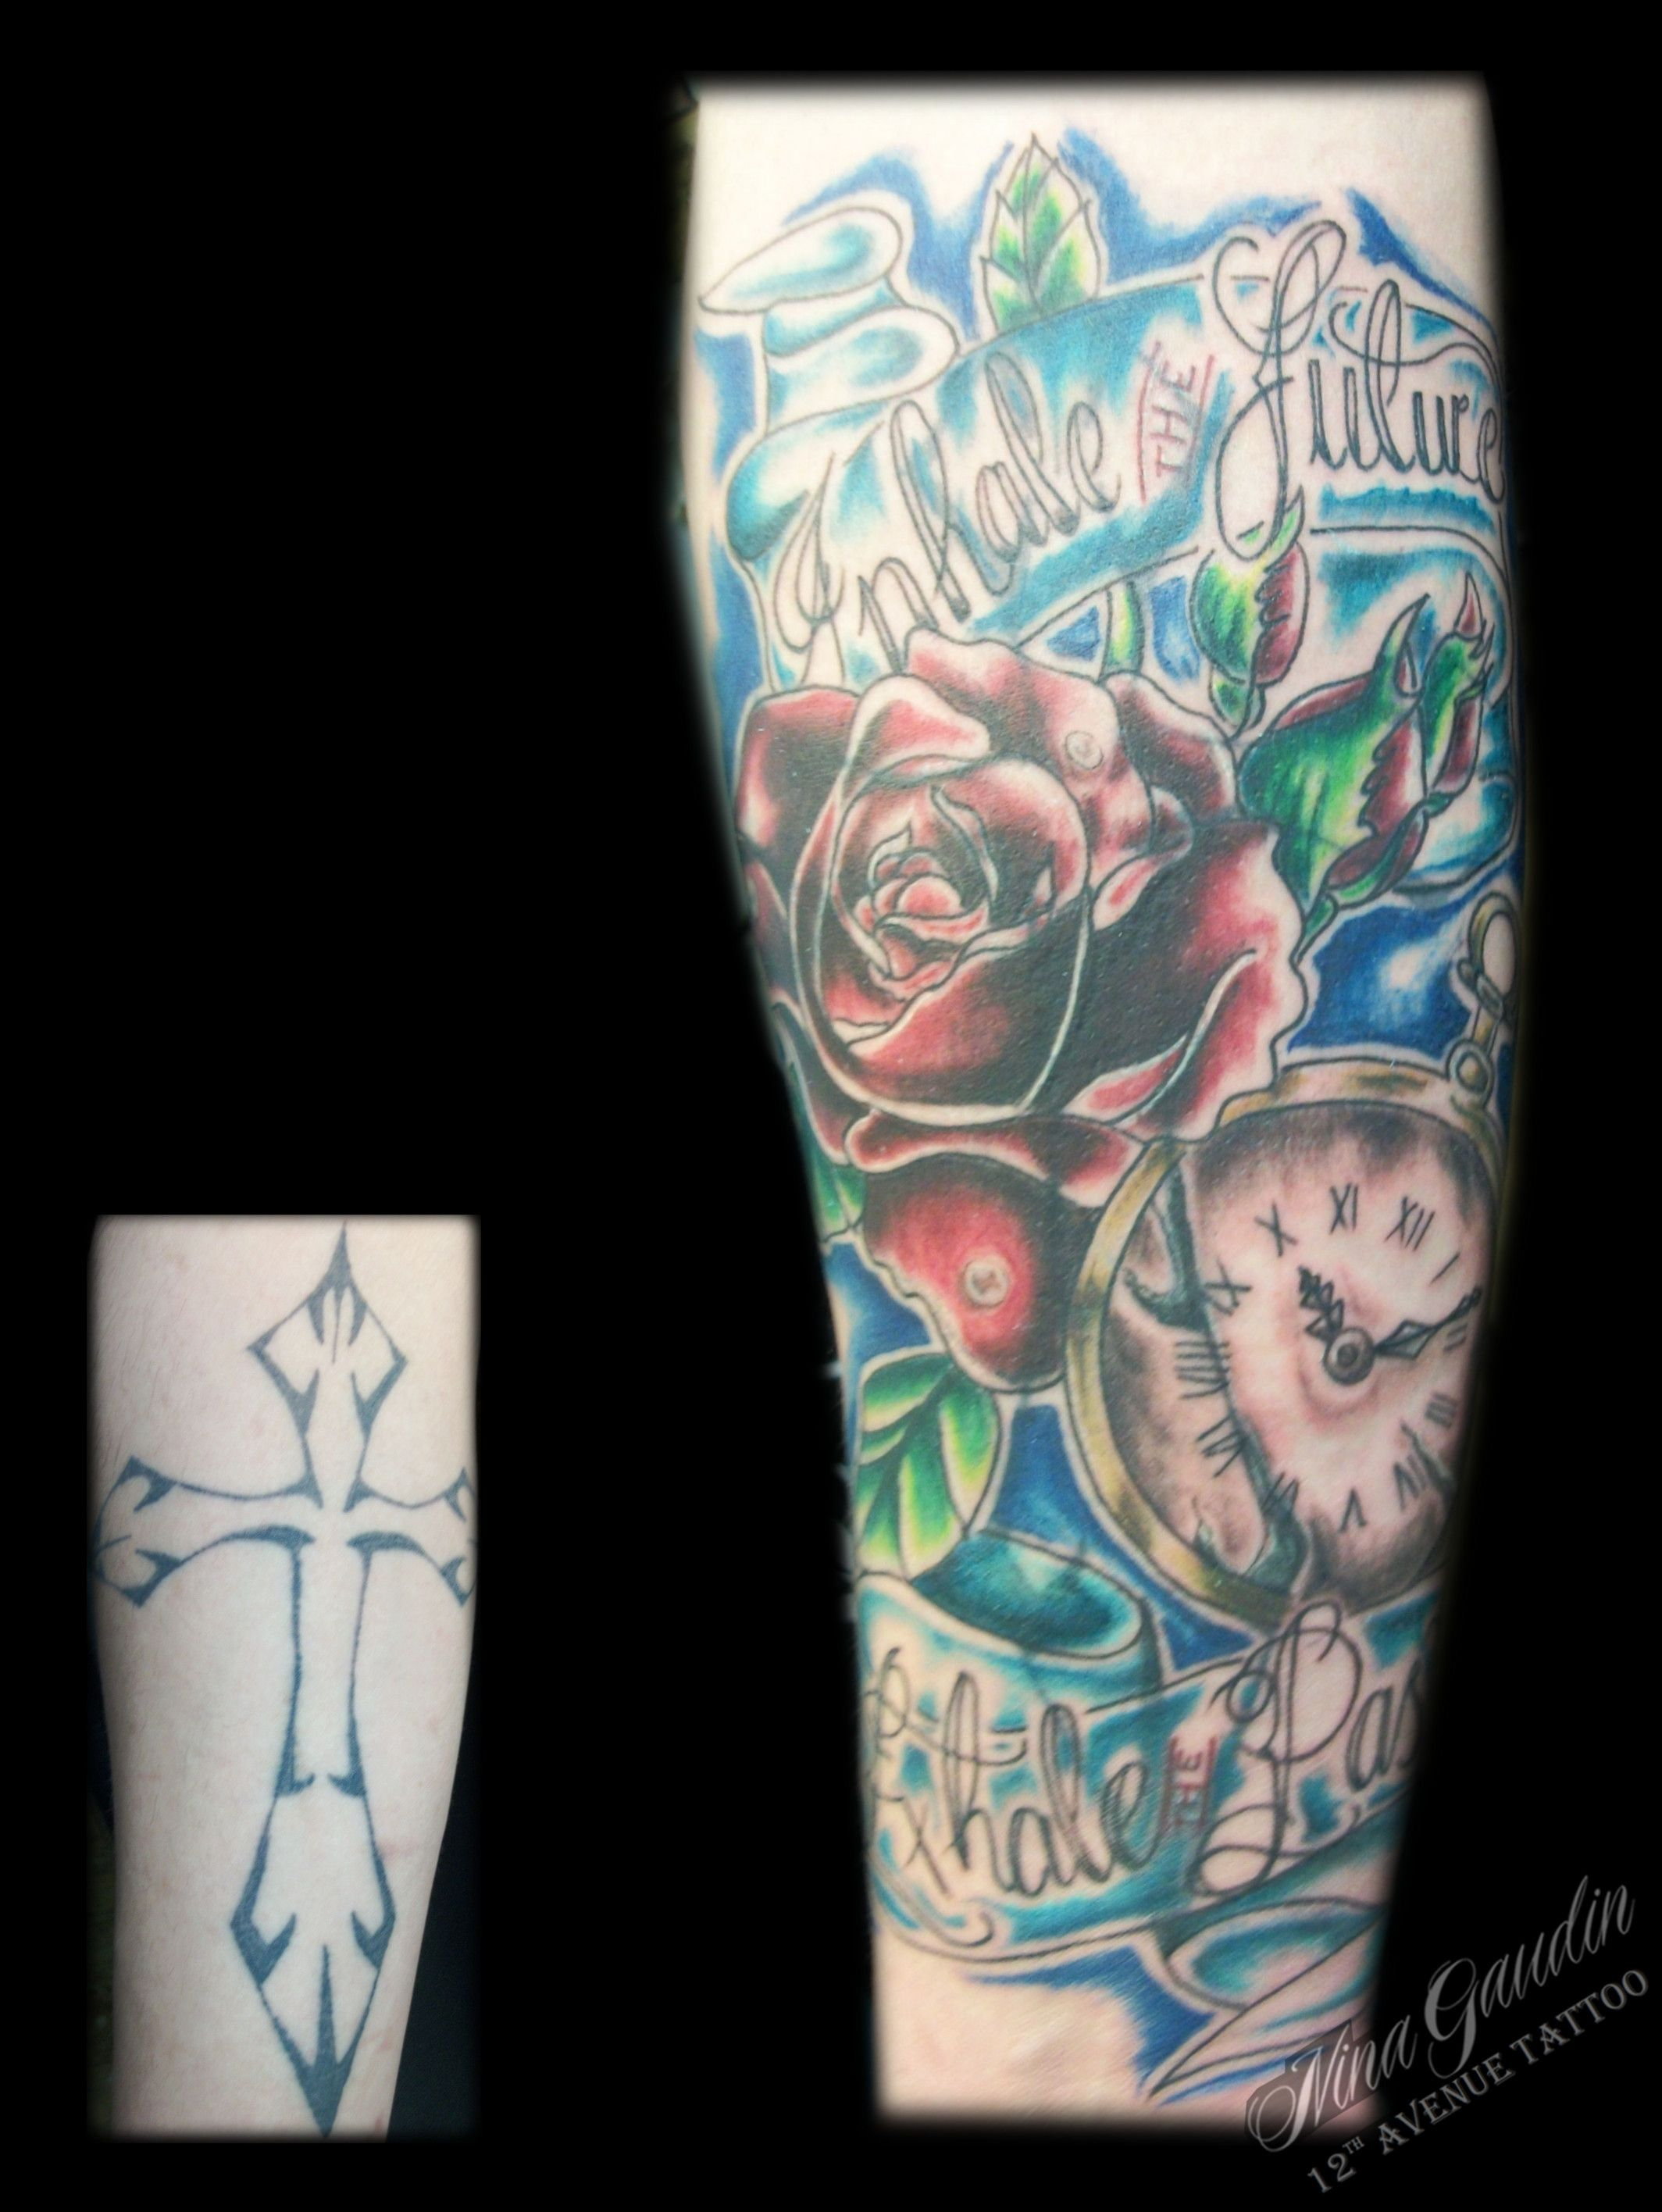 1d87f7df9fd6b Rose, pocket watch, and banner - Inhale Future Exhale Past - color forearm Cover  Up - Tattoo by Nina Gaudin of 12th Avenue Tattoo in Nampa, ID